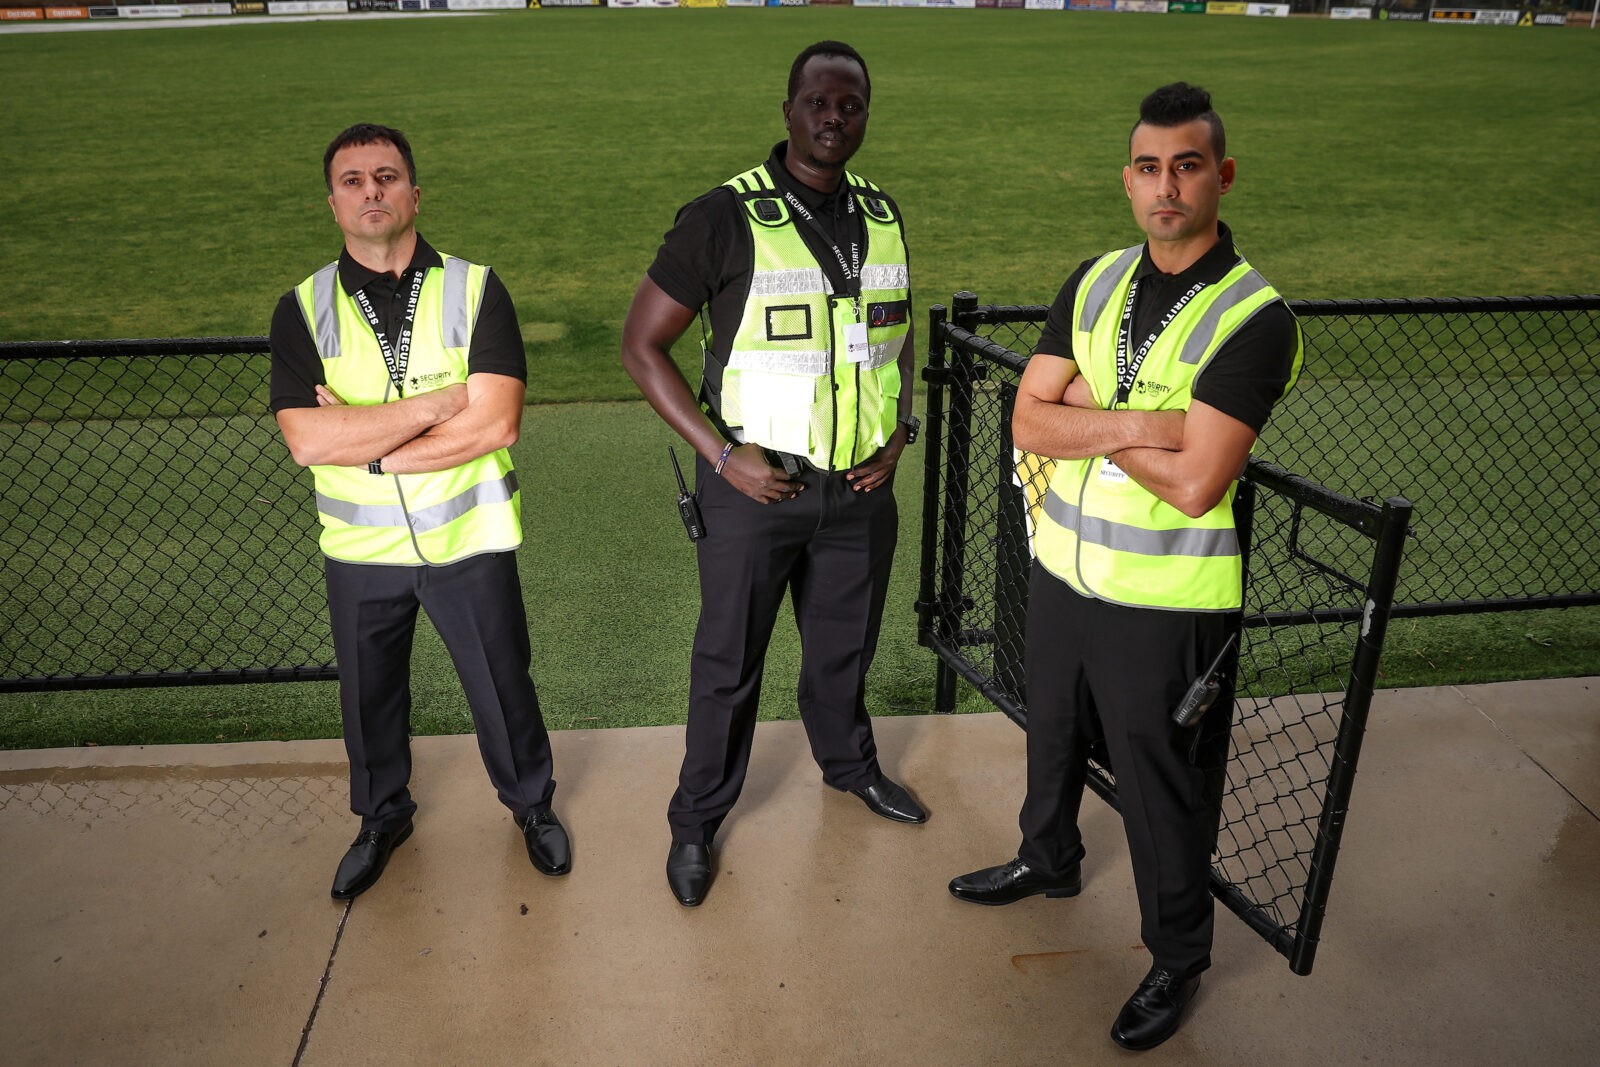 Event security crowd control Melbourne